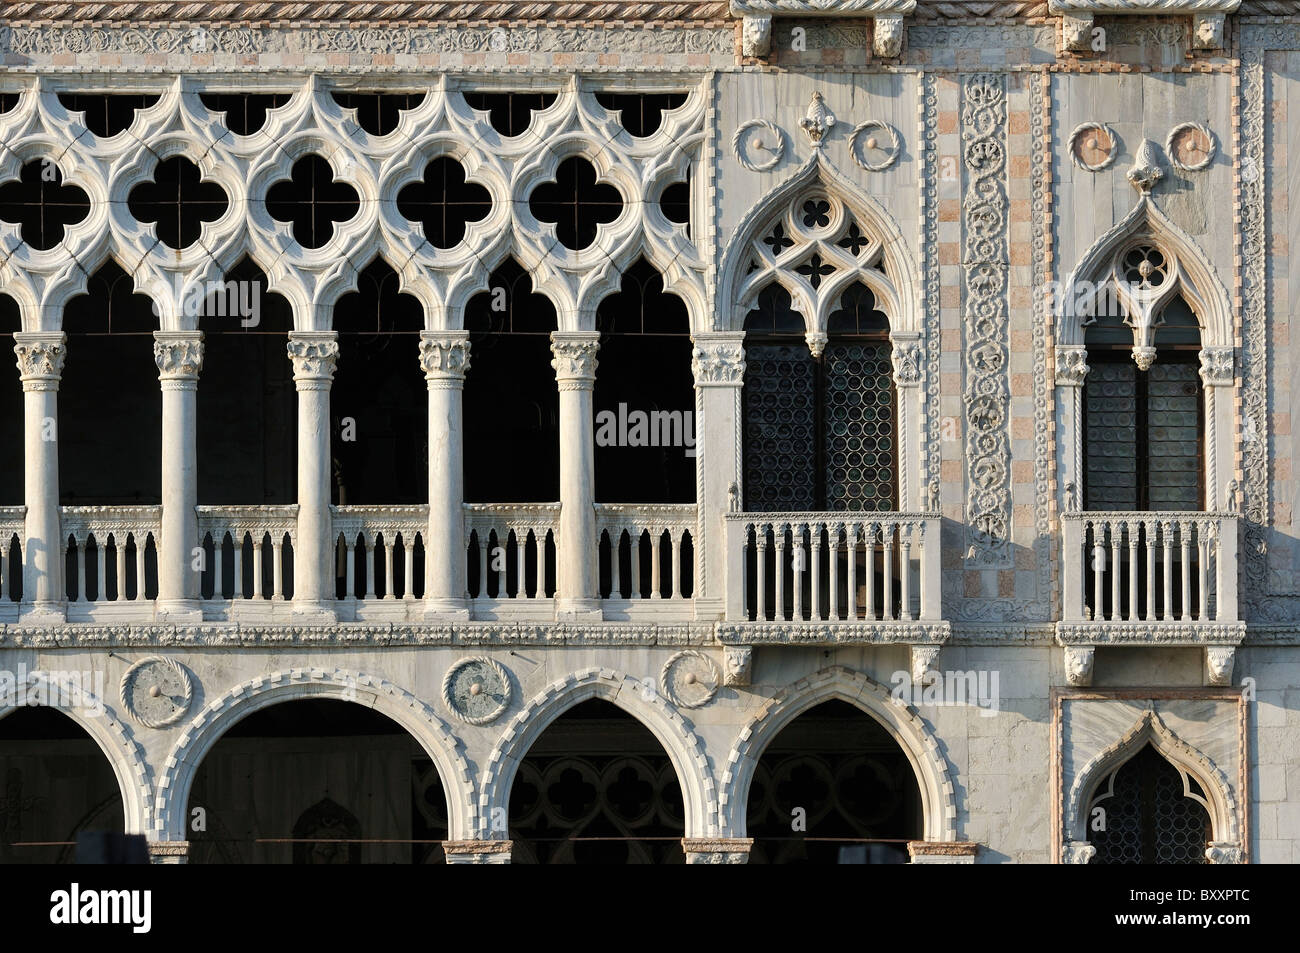 Venice. Italy. 15th C Ca' d'Oro from the Grand Canal. - Stock Image